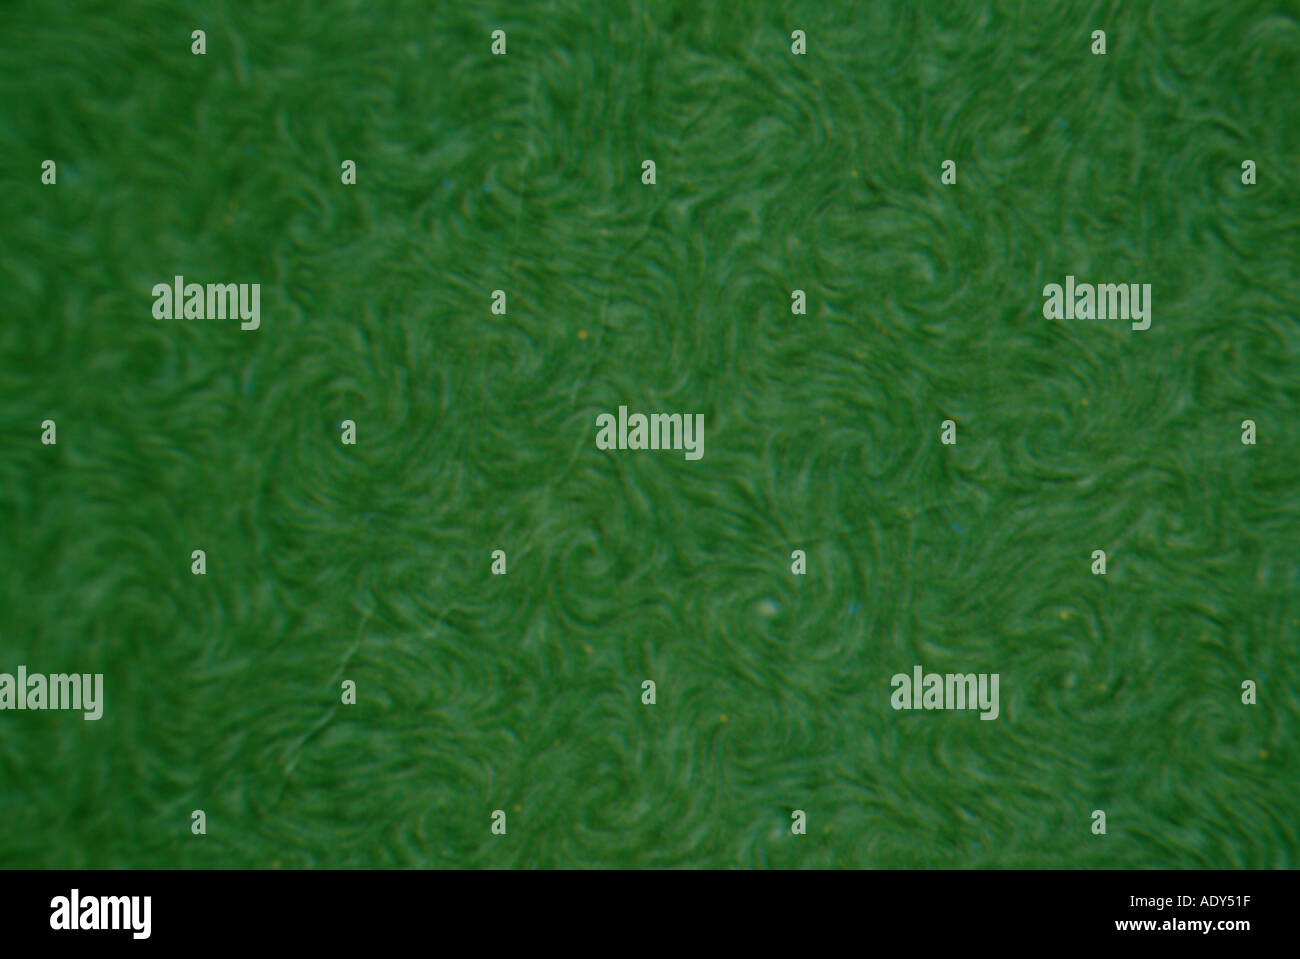 Backgrounds II green greenish smear smudge pattern repetition abstract miscellaneous background texture - Stock Image